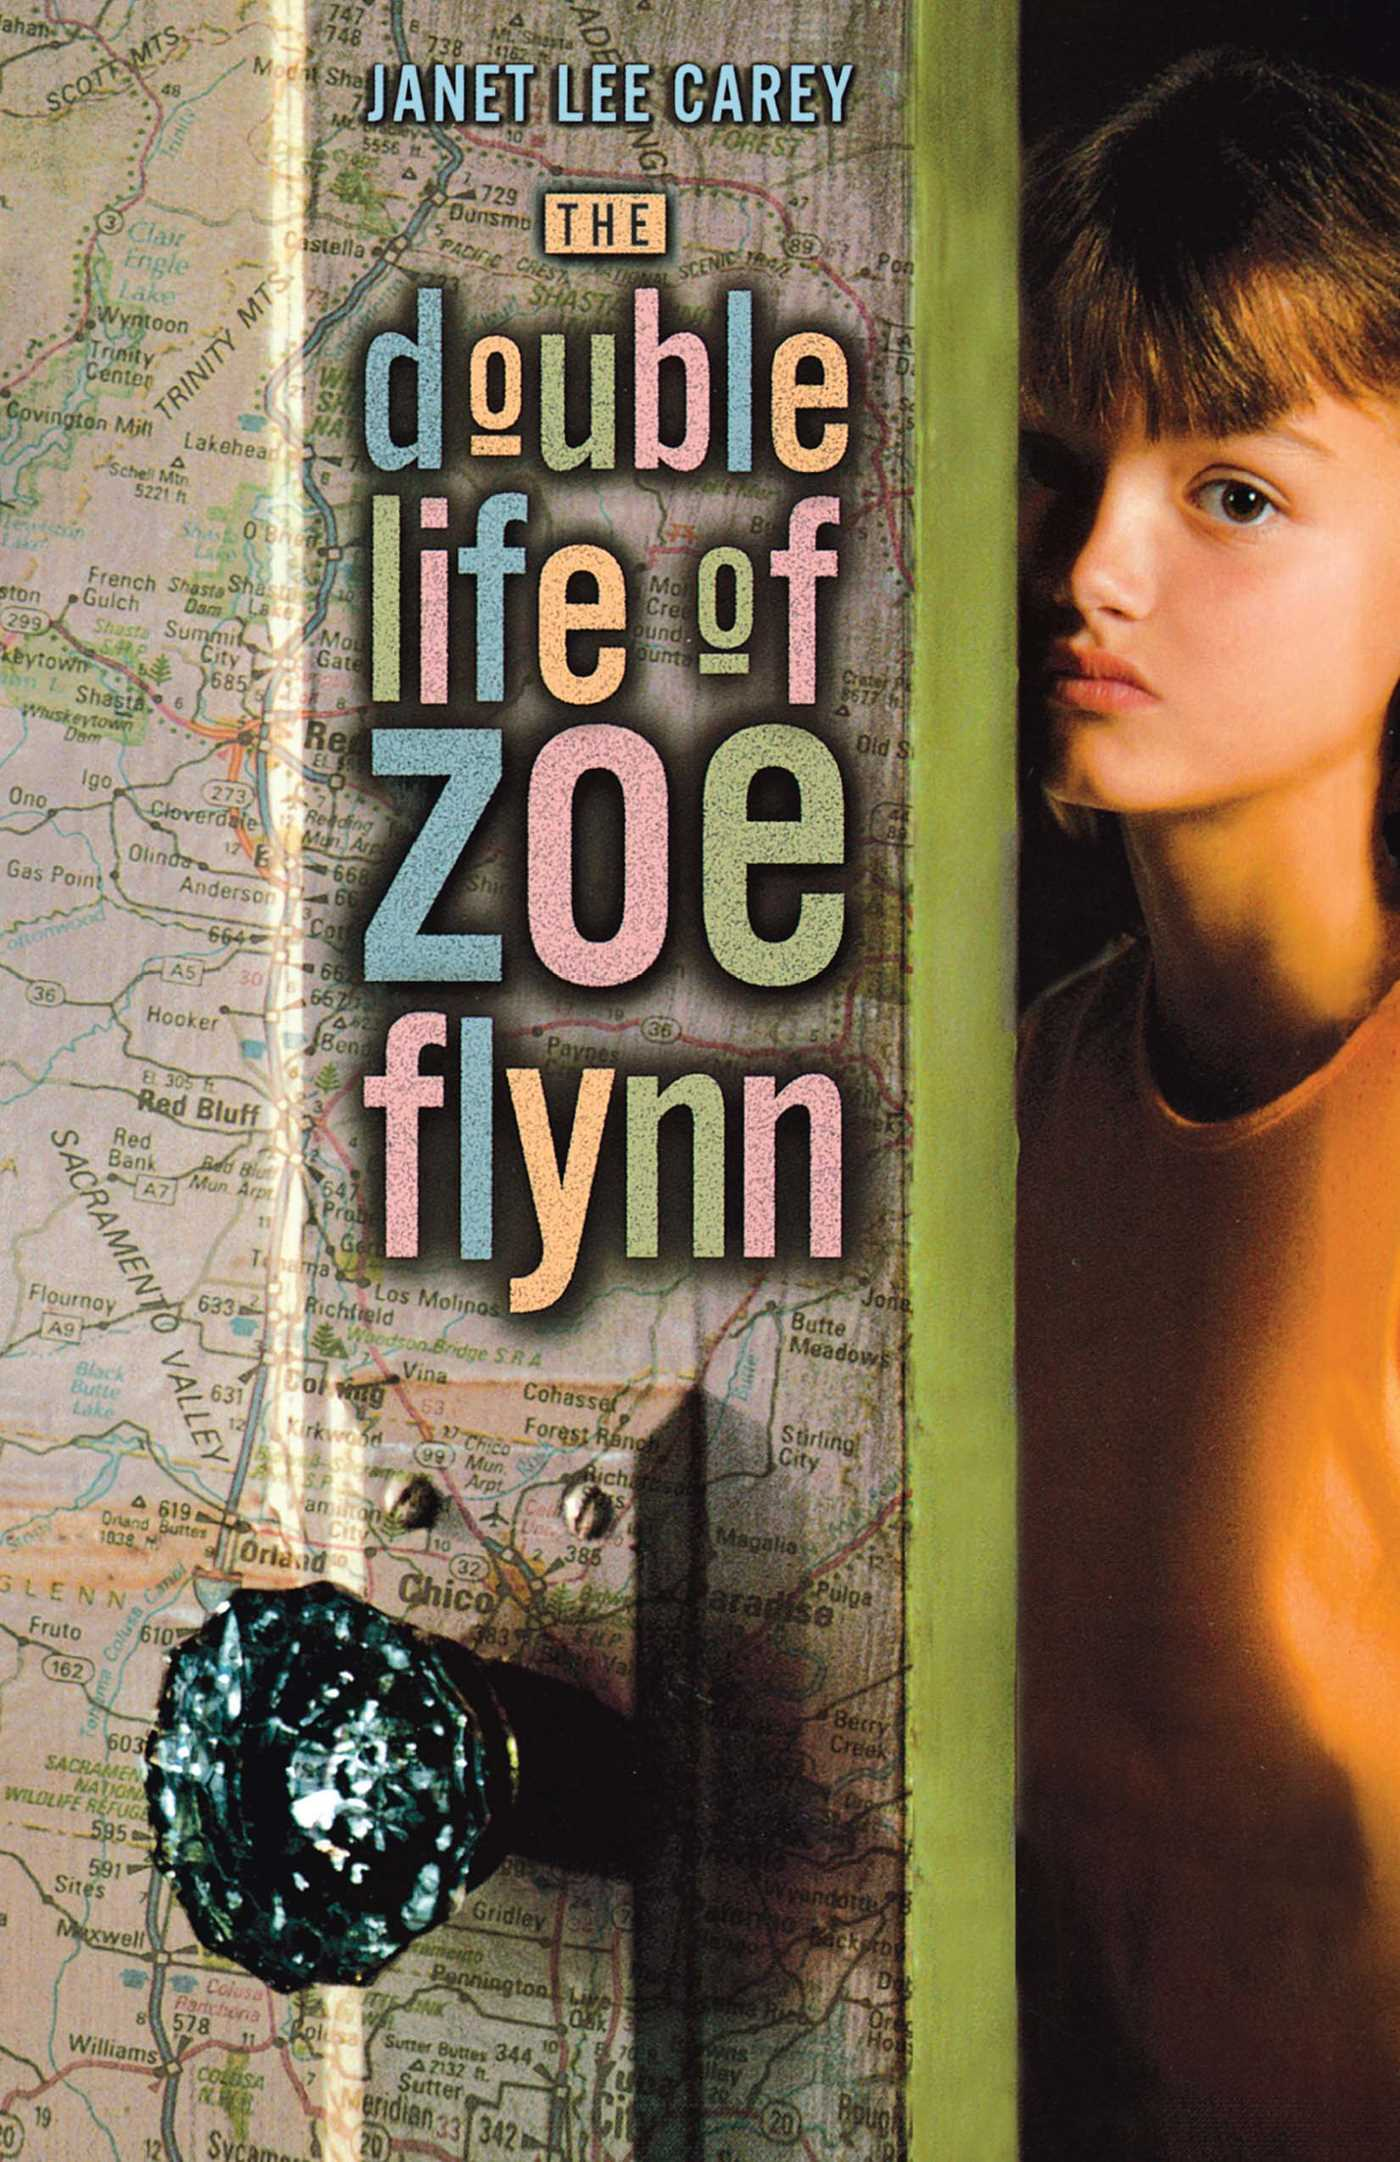 The-double-life-of-zoe-flynn-9781416967545_hr